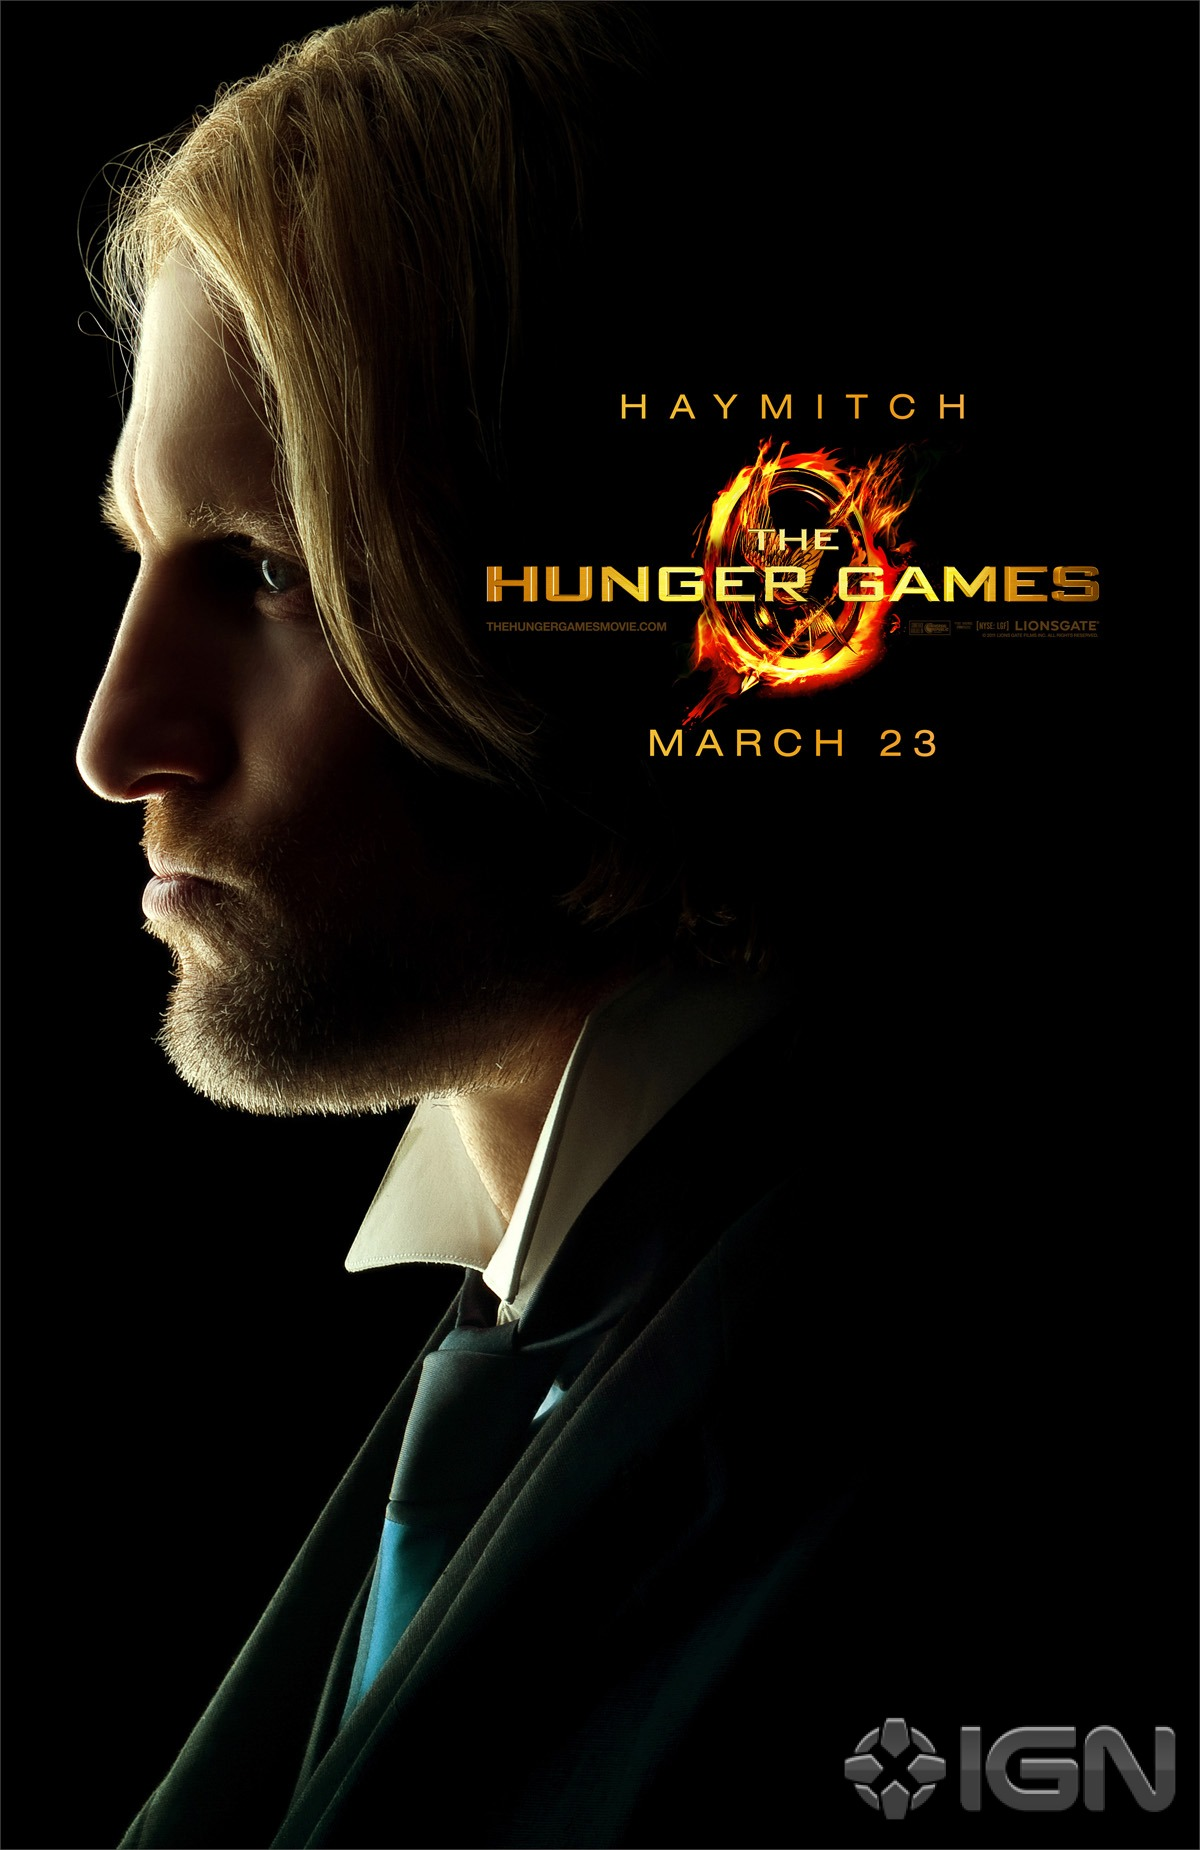 The Hunger Games Poster - Haymitch